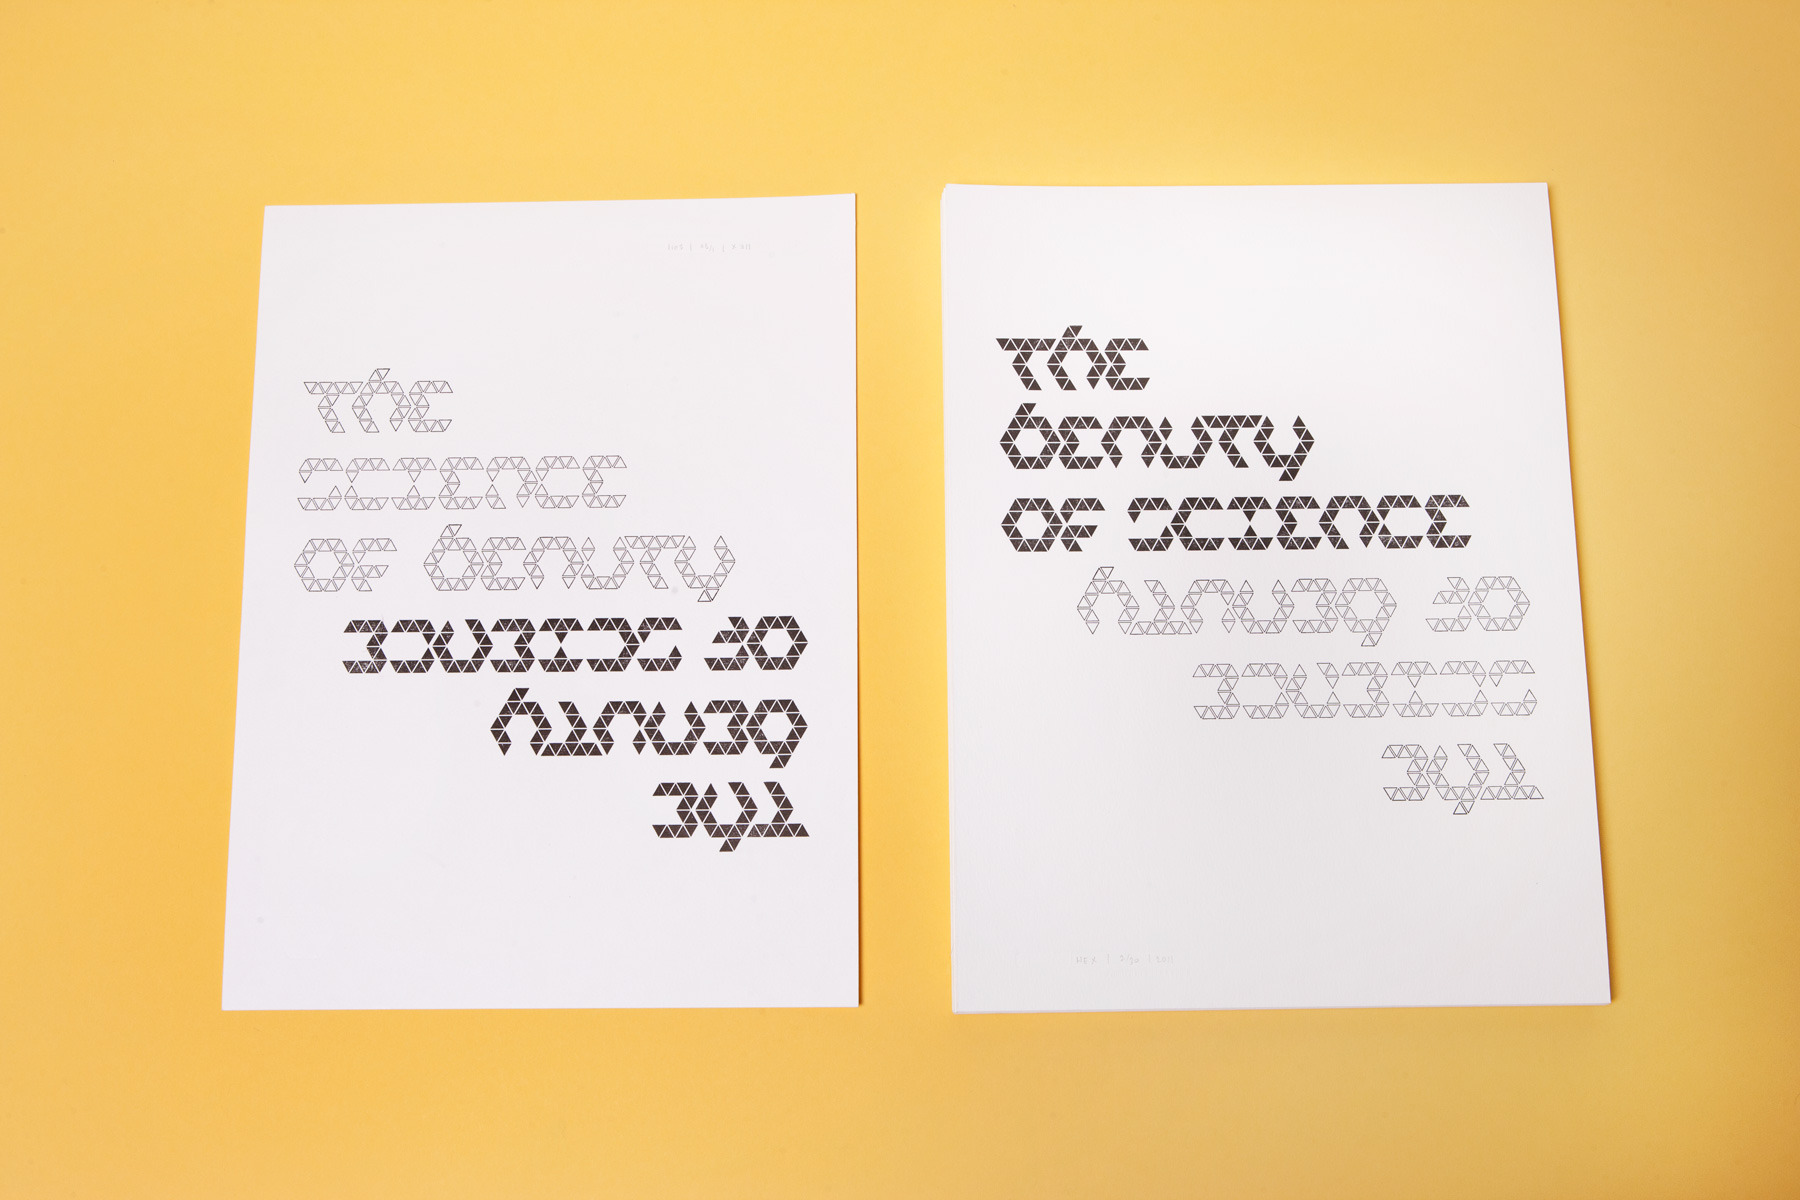 The Beauty of Science — Berger & Föhr — Design & Art Direction